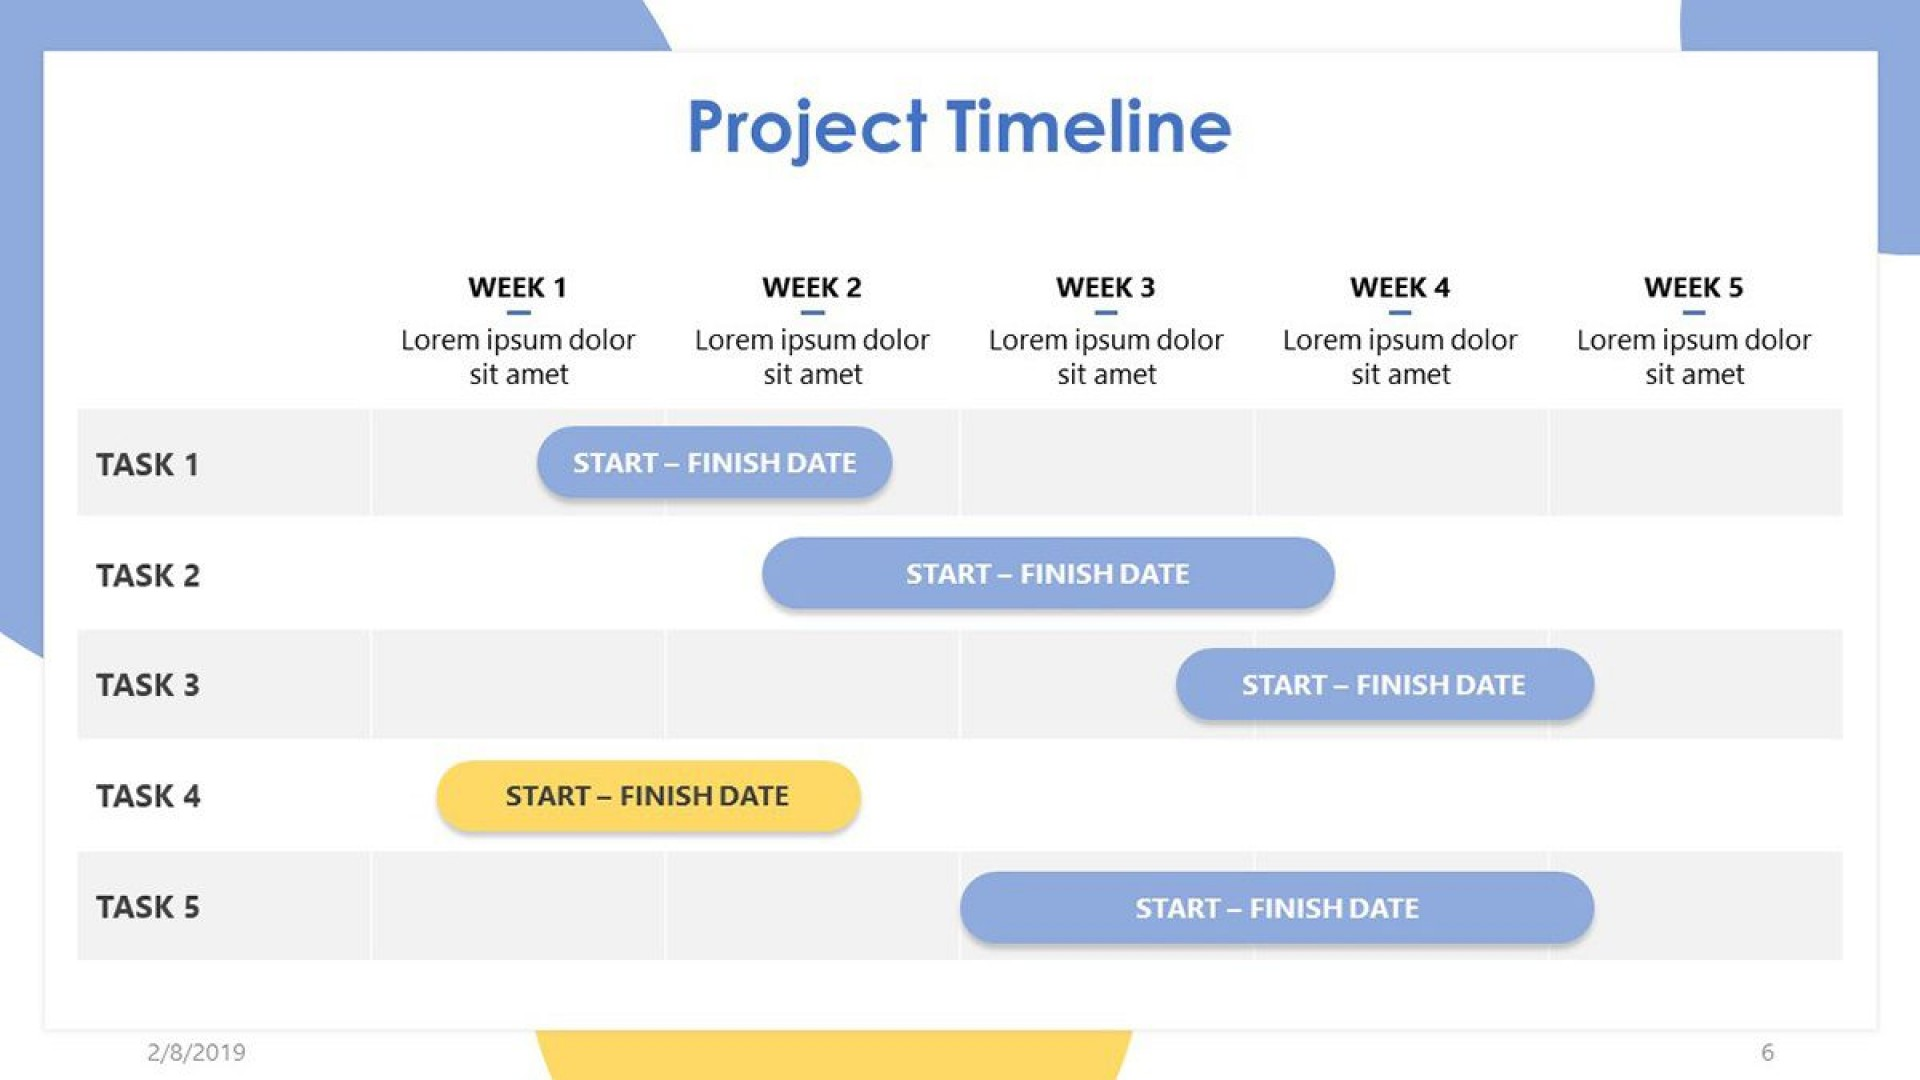 008 Formidable Project Timeline Template Word Idea  Management Microsoft1920